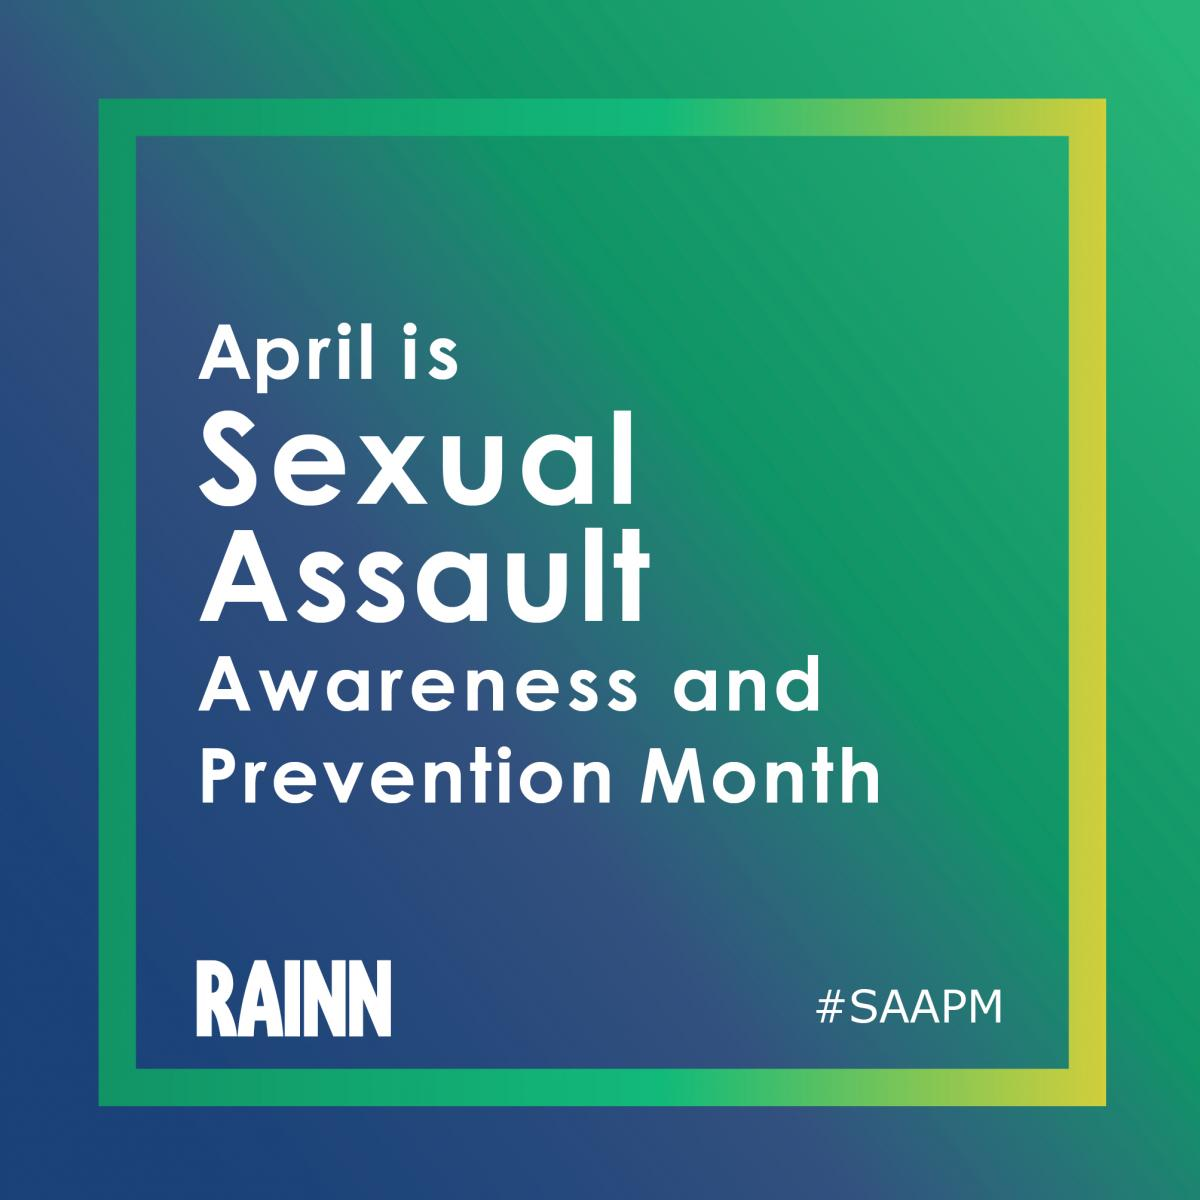 Instagram-ready graphic stating: April is Sexual Assault Awareness and Prevention Month #SAAPM